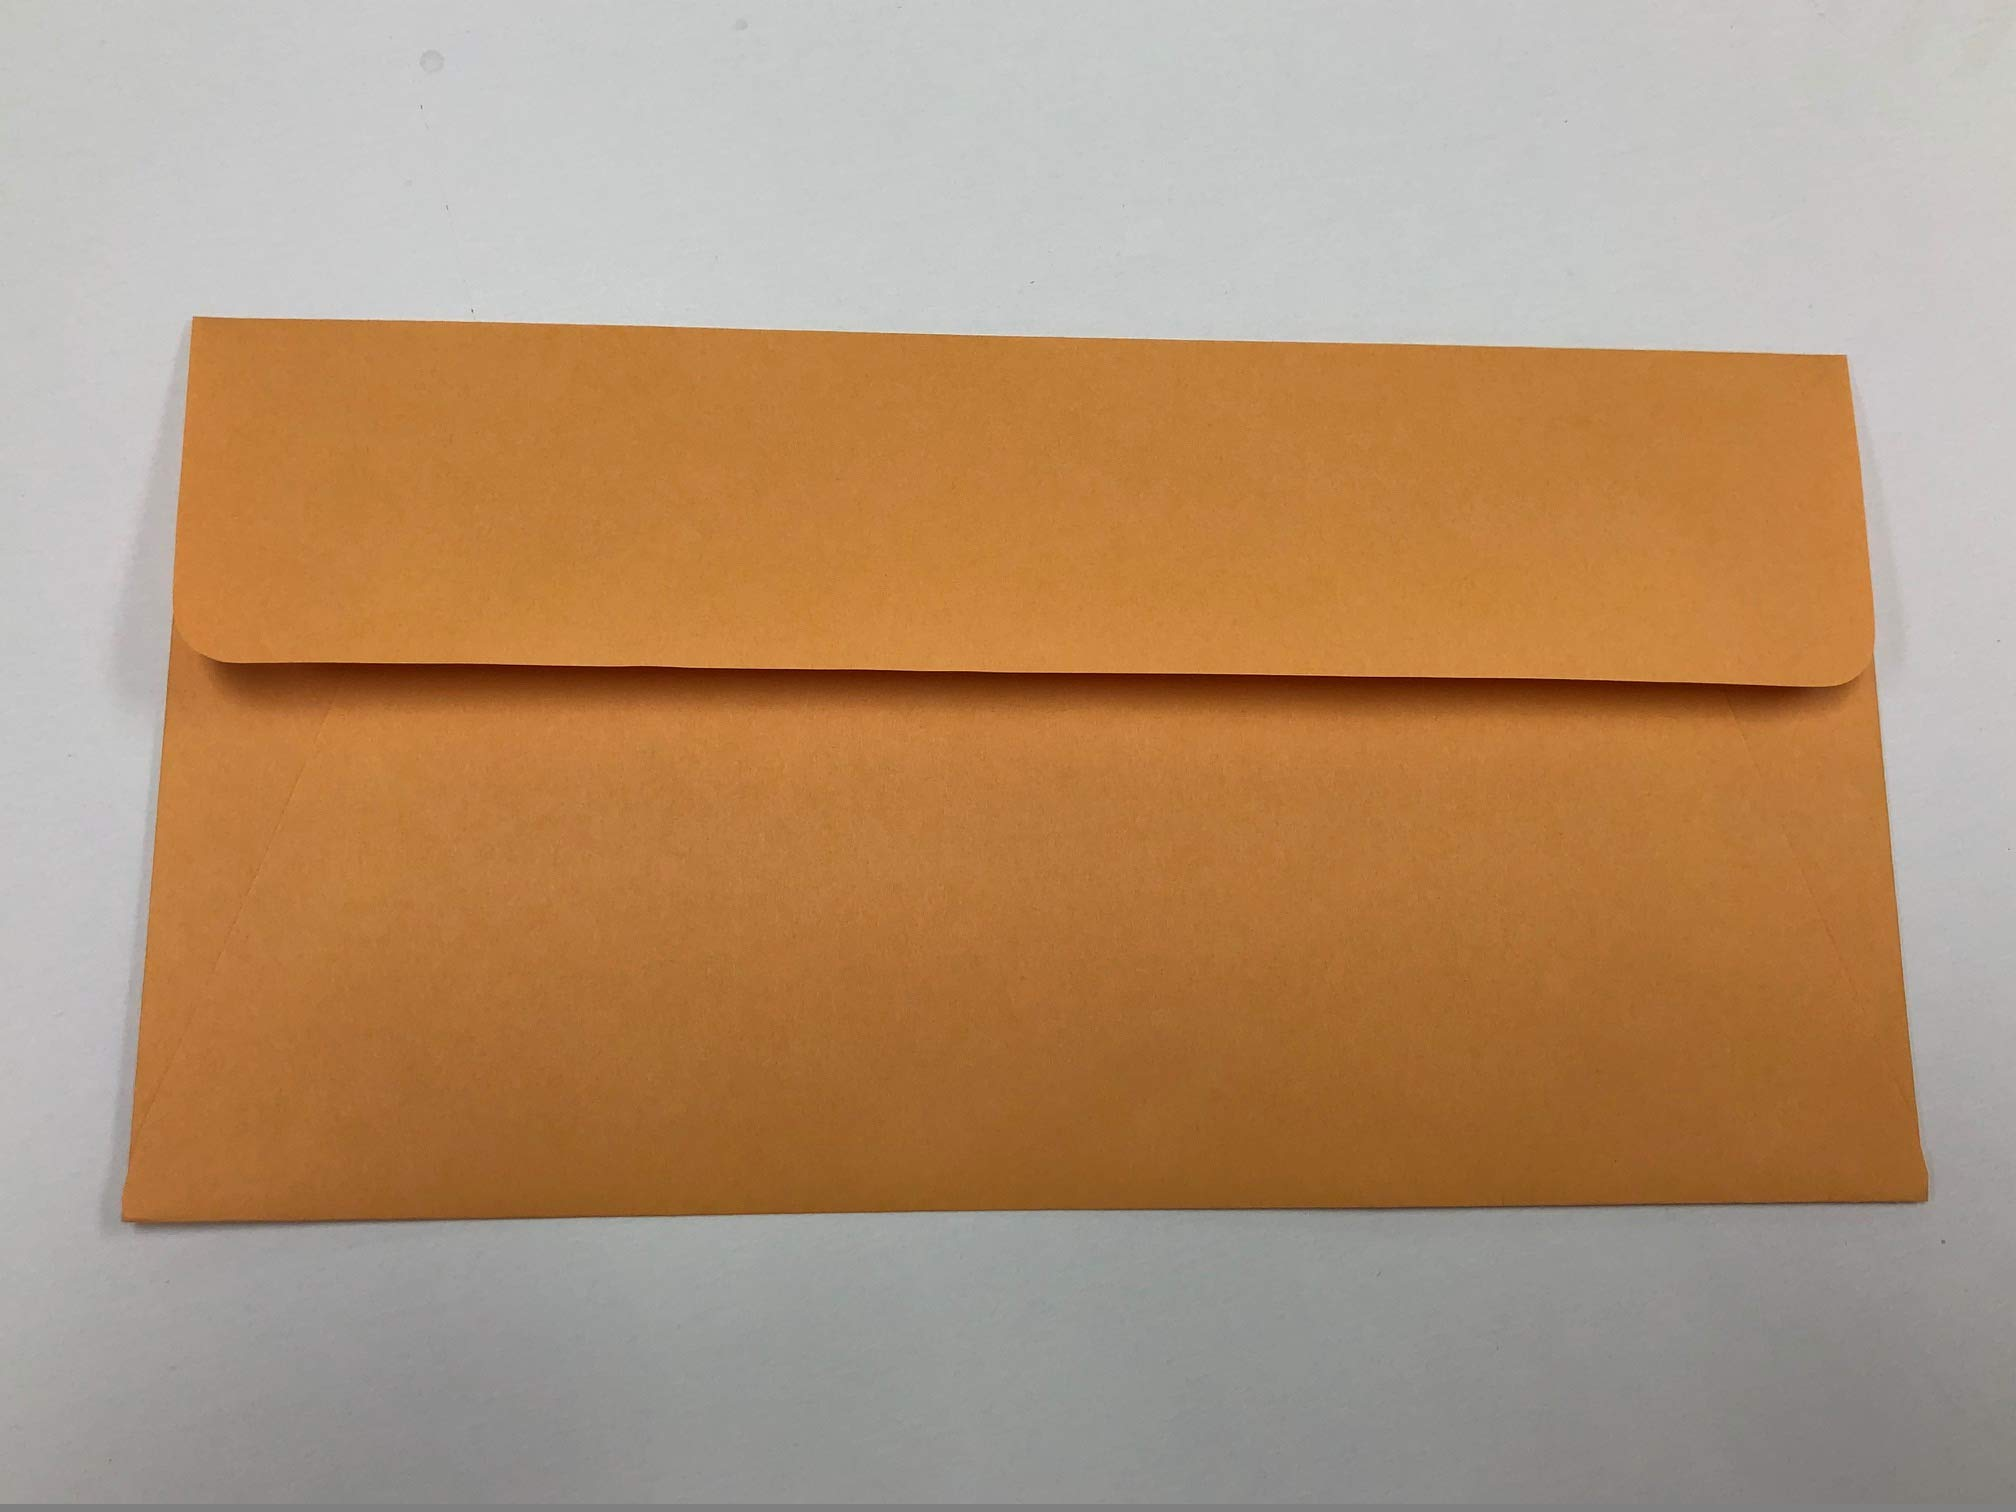 License Plate Envelopes, (Moist & Seal) - Pack of 50 by Burrell Printing